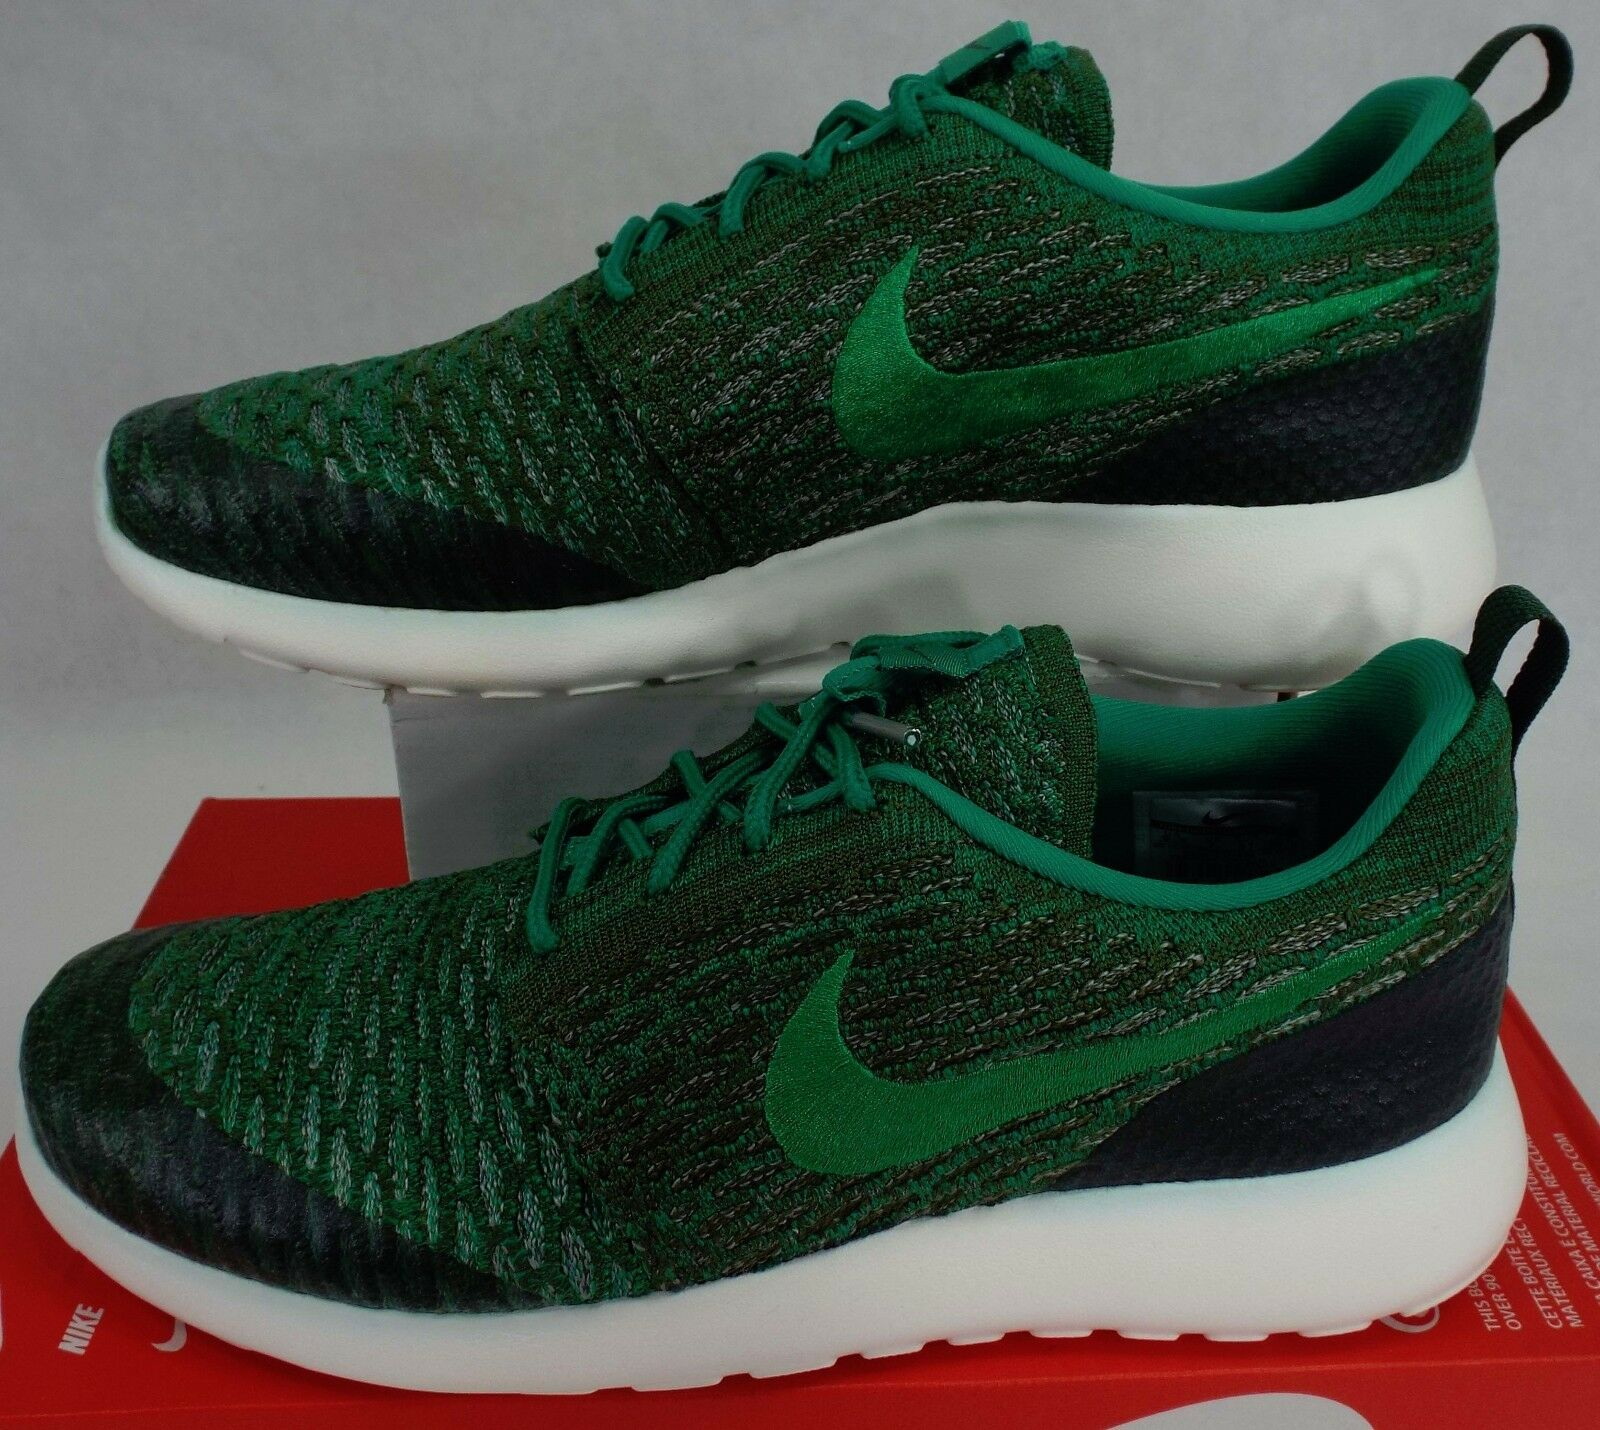 Nuove donne 9 nike roshe uno flyknit green scarpe bianche 704927-303